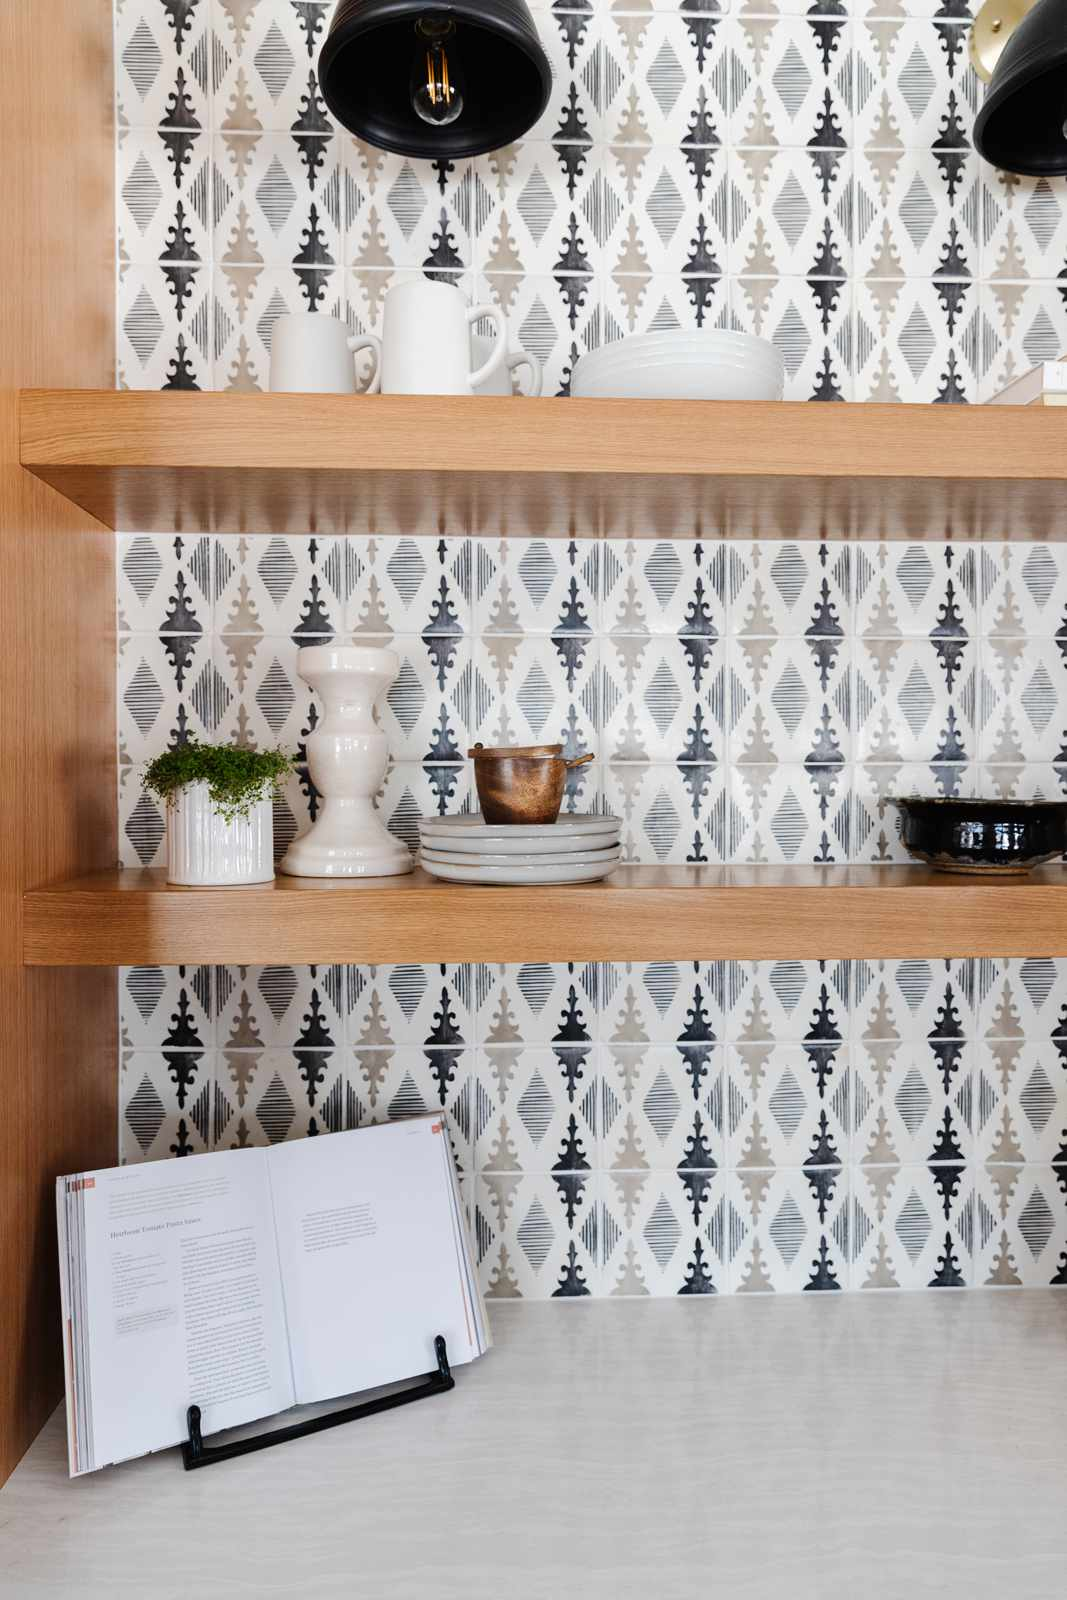 kitchen counter with floating shelves and backsplash, one cookbook propped open for display